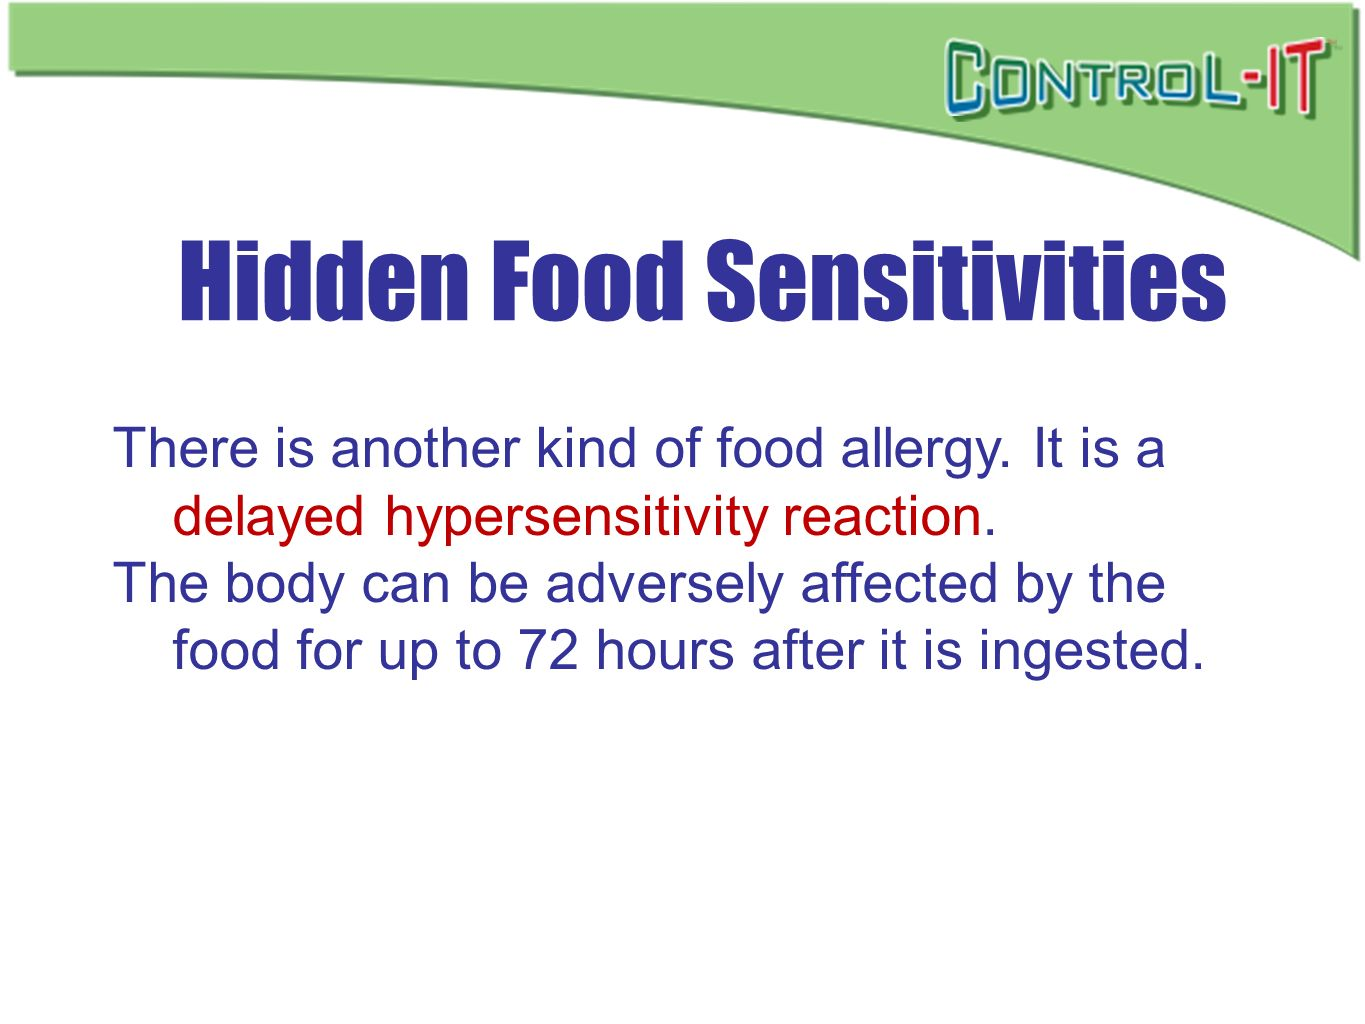 Hidden Food Sensitivities There is another kind of food allergy. It is a delayed hypersensitivity reaction. The body can be adversely affected by the